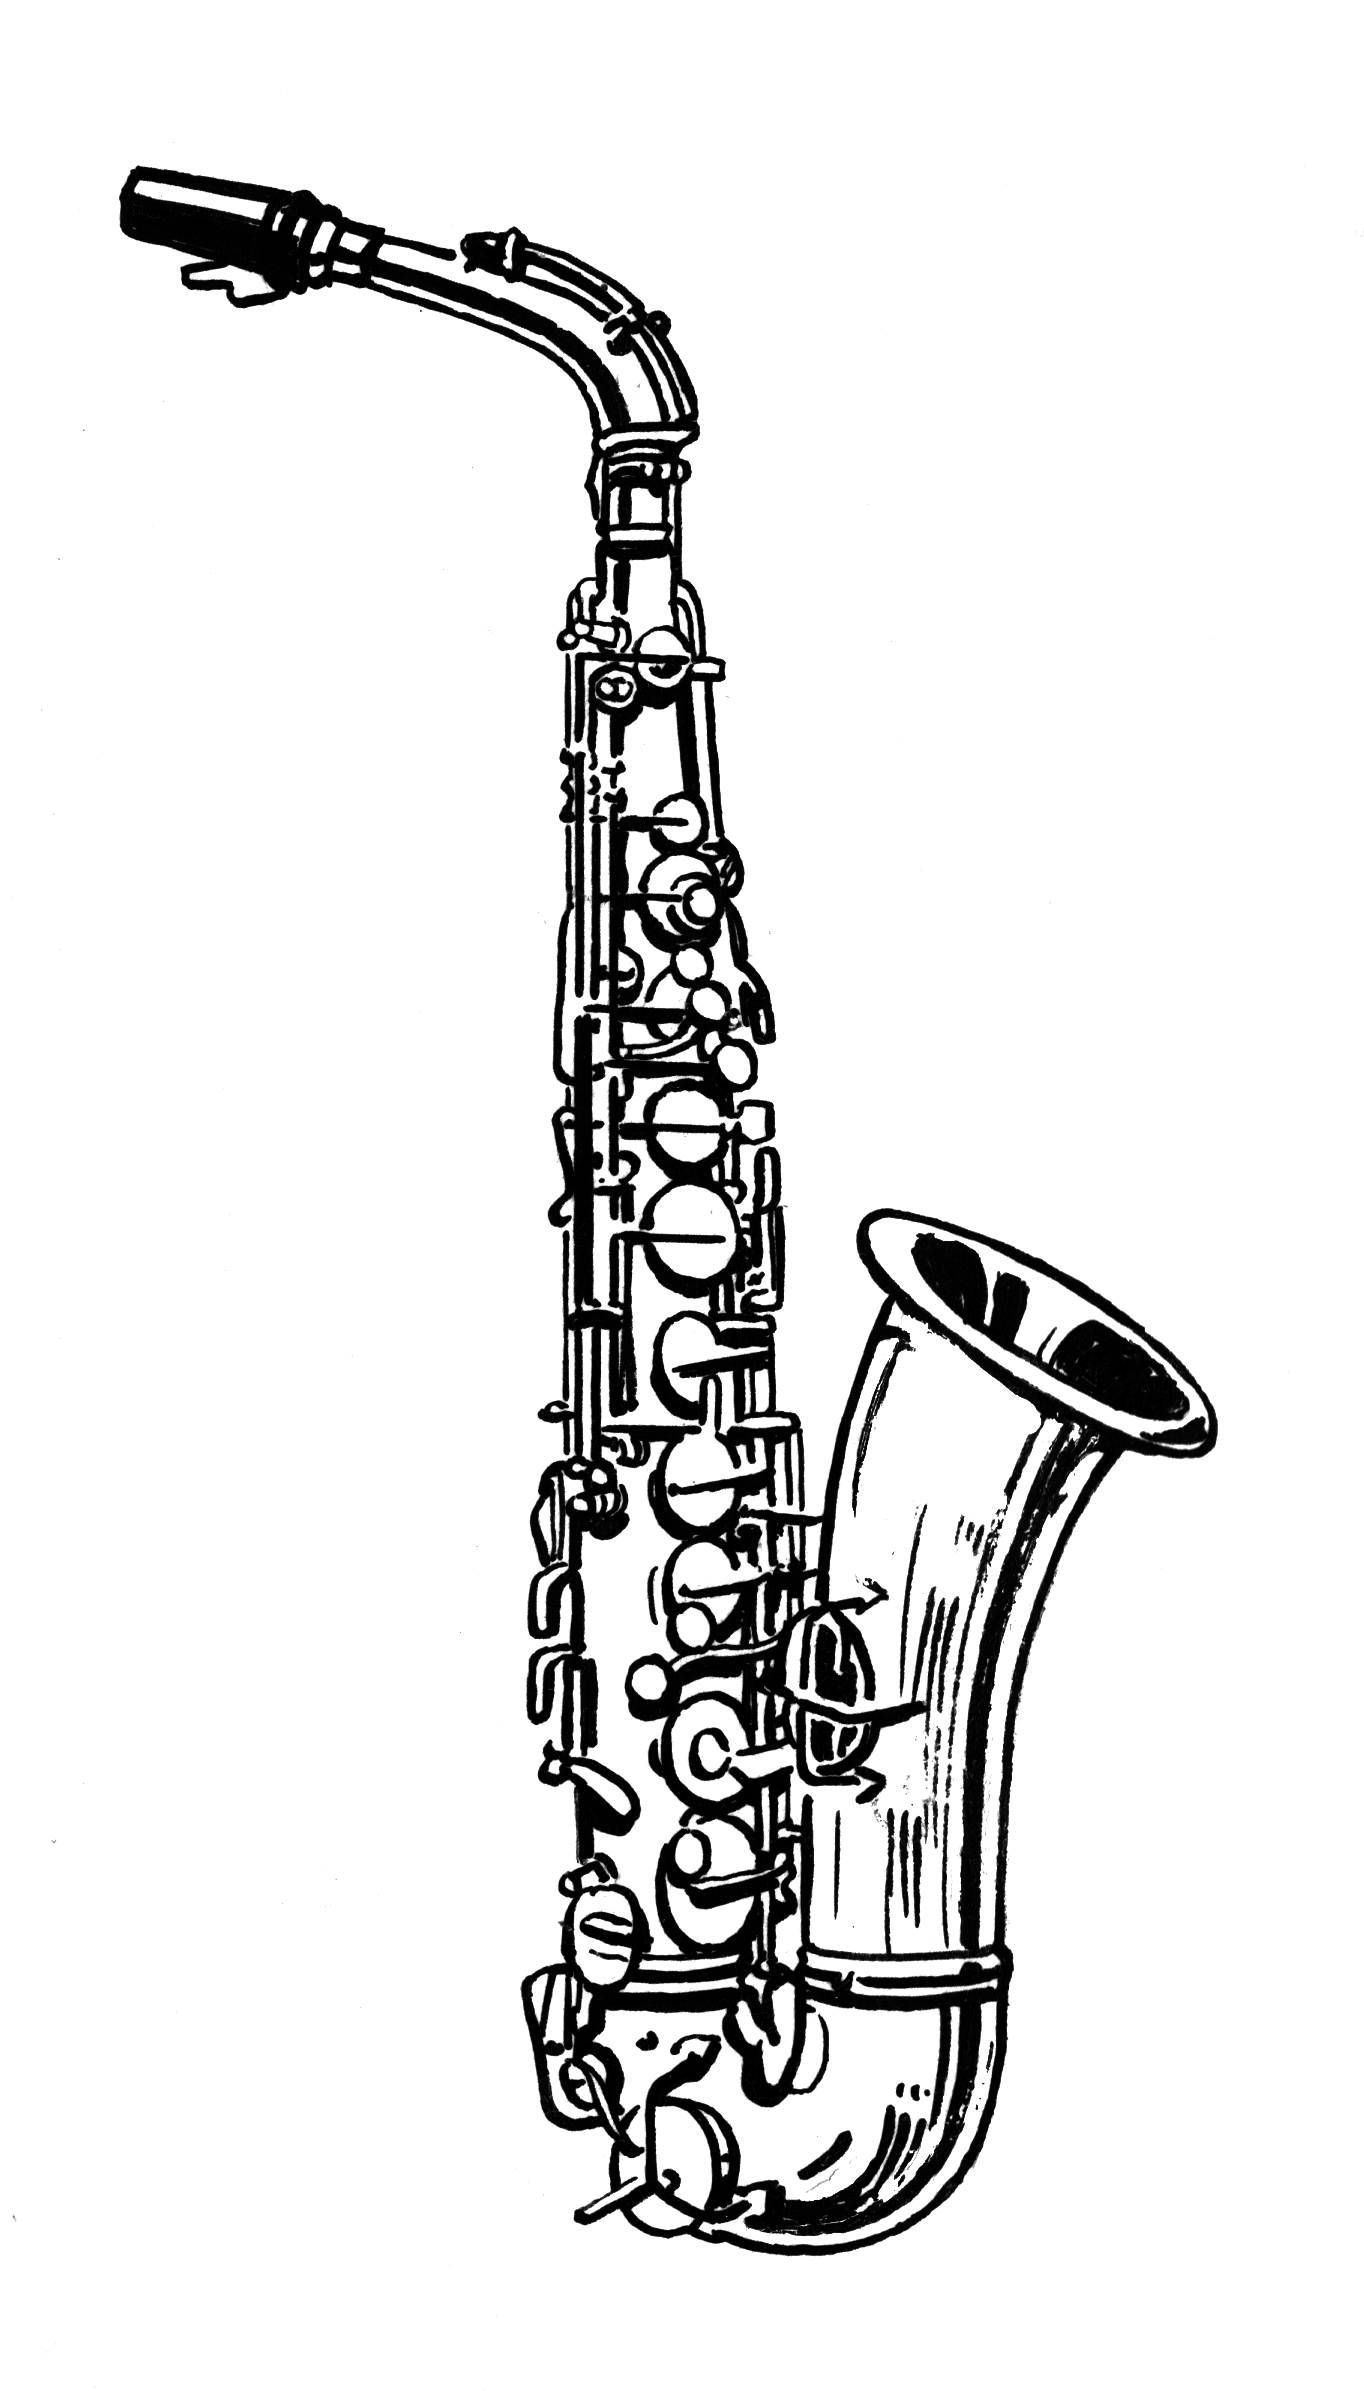 clip art freeuse stock Saxophone clipart black and white. Musica pinterest saxophones clip